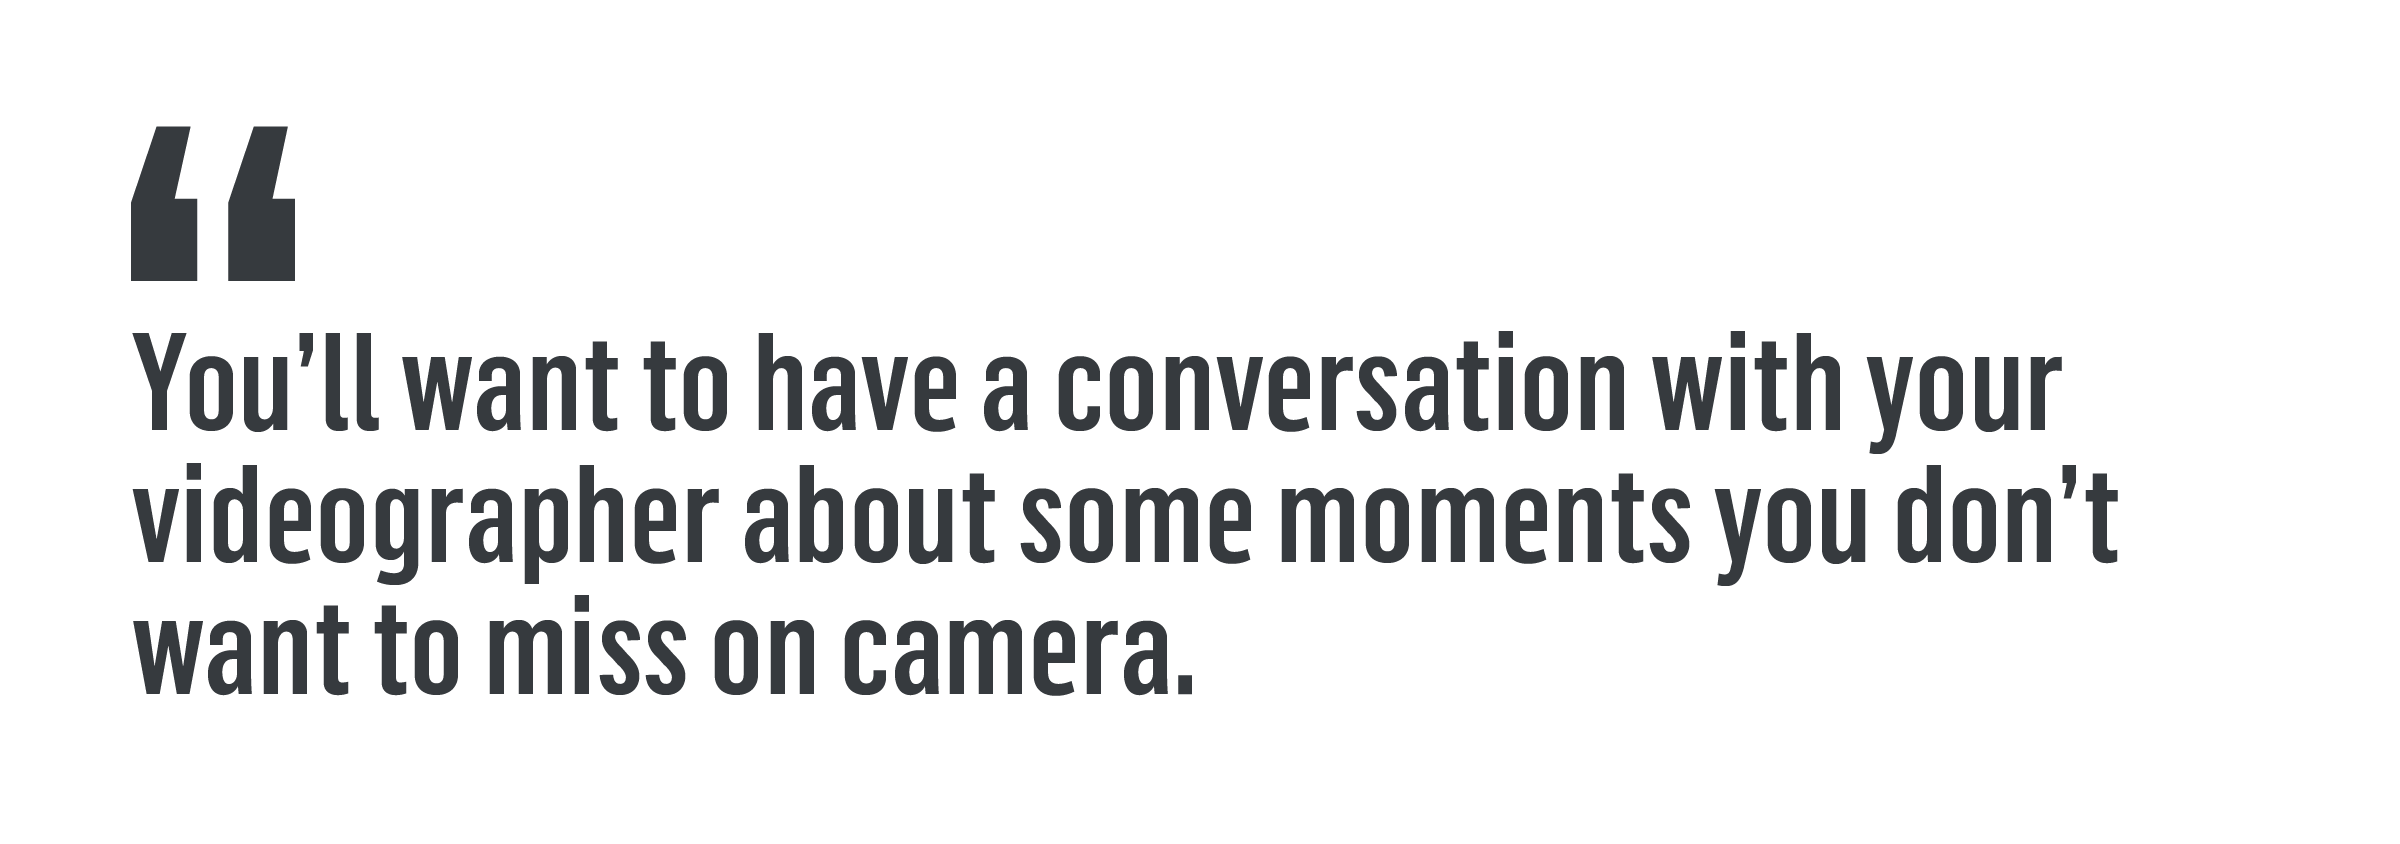 """You'll want to have a conversation with your videographer about some moments you don't want to miss on camera."""